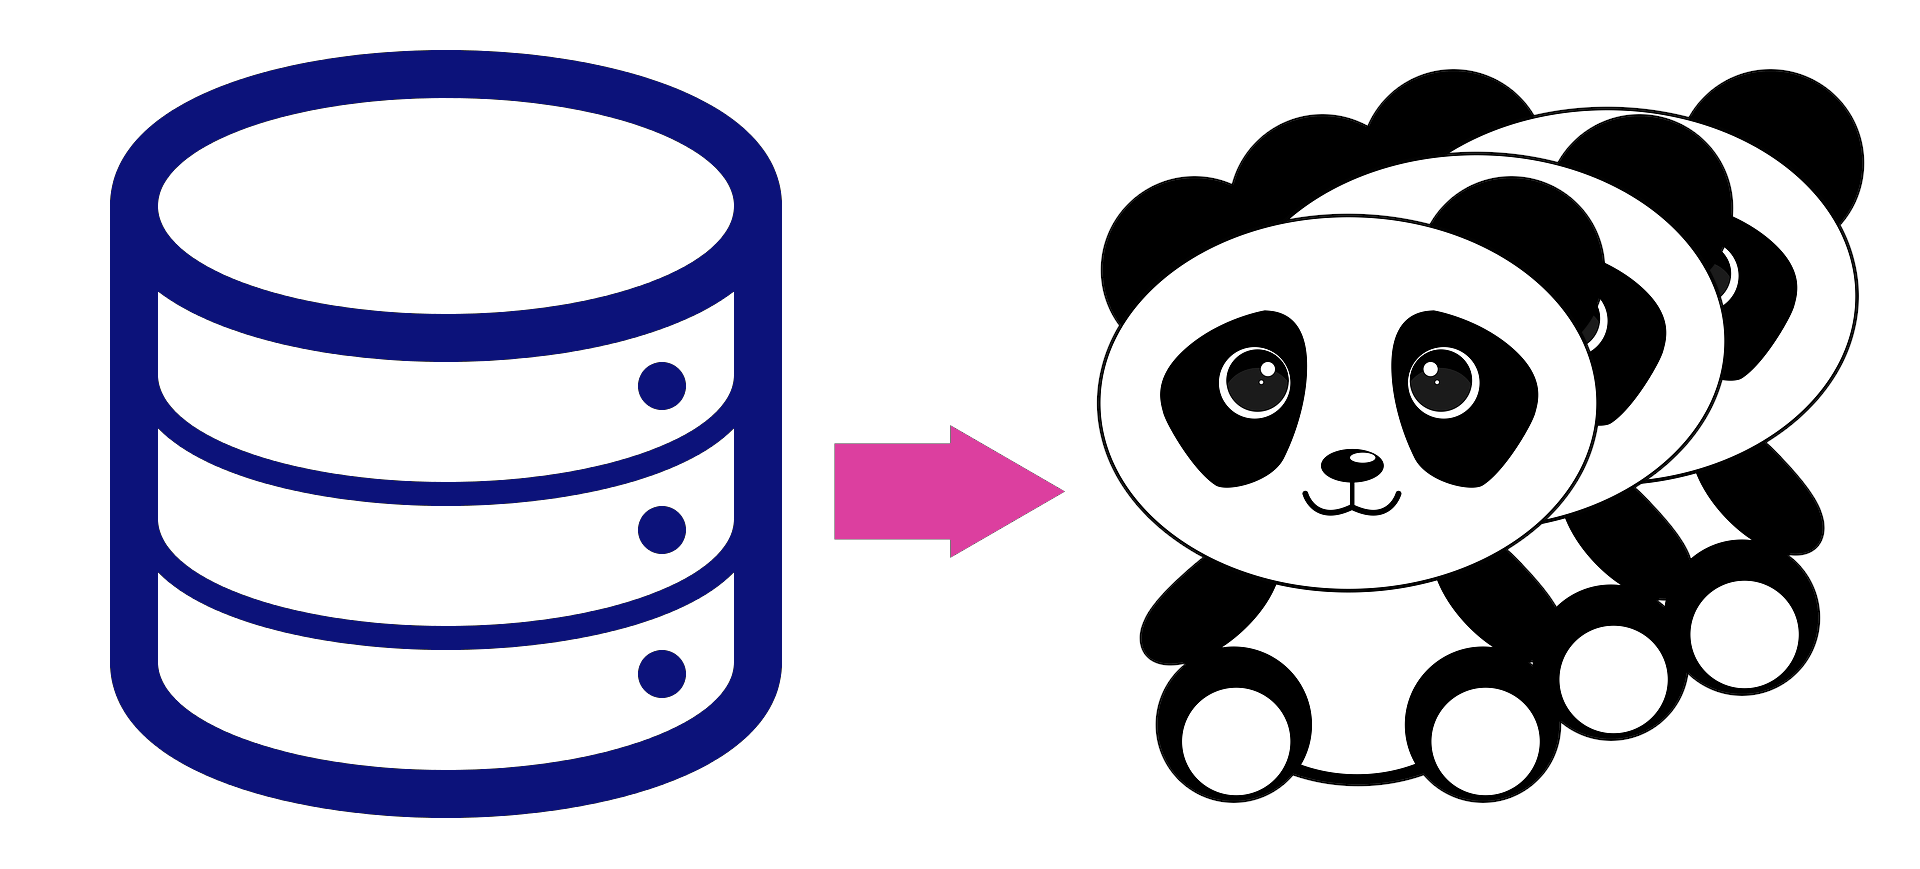 Database symbol with and arrow point to a picture of some pandas